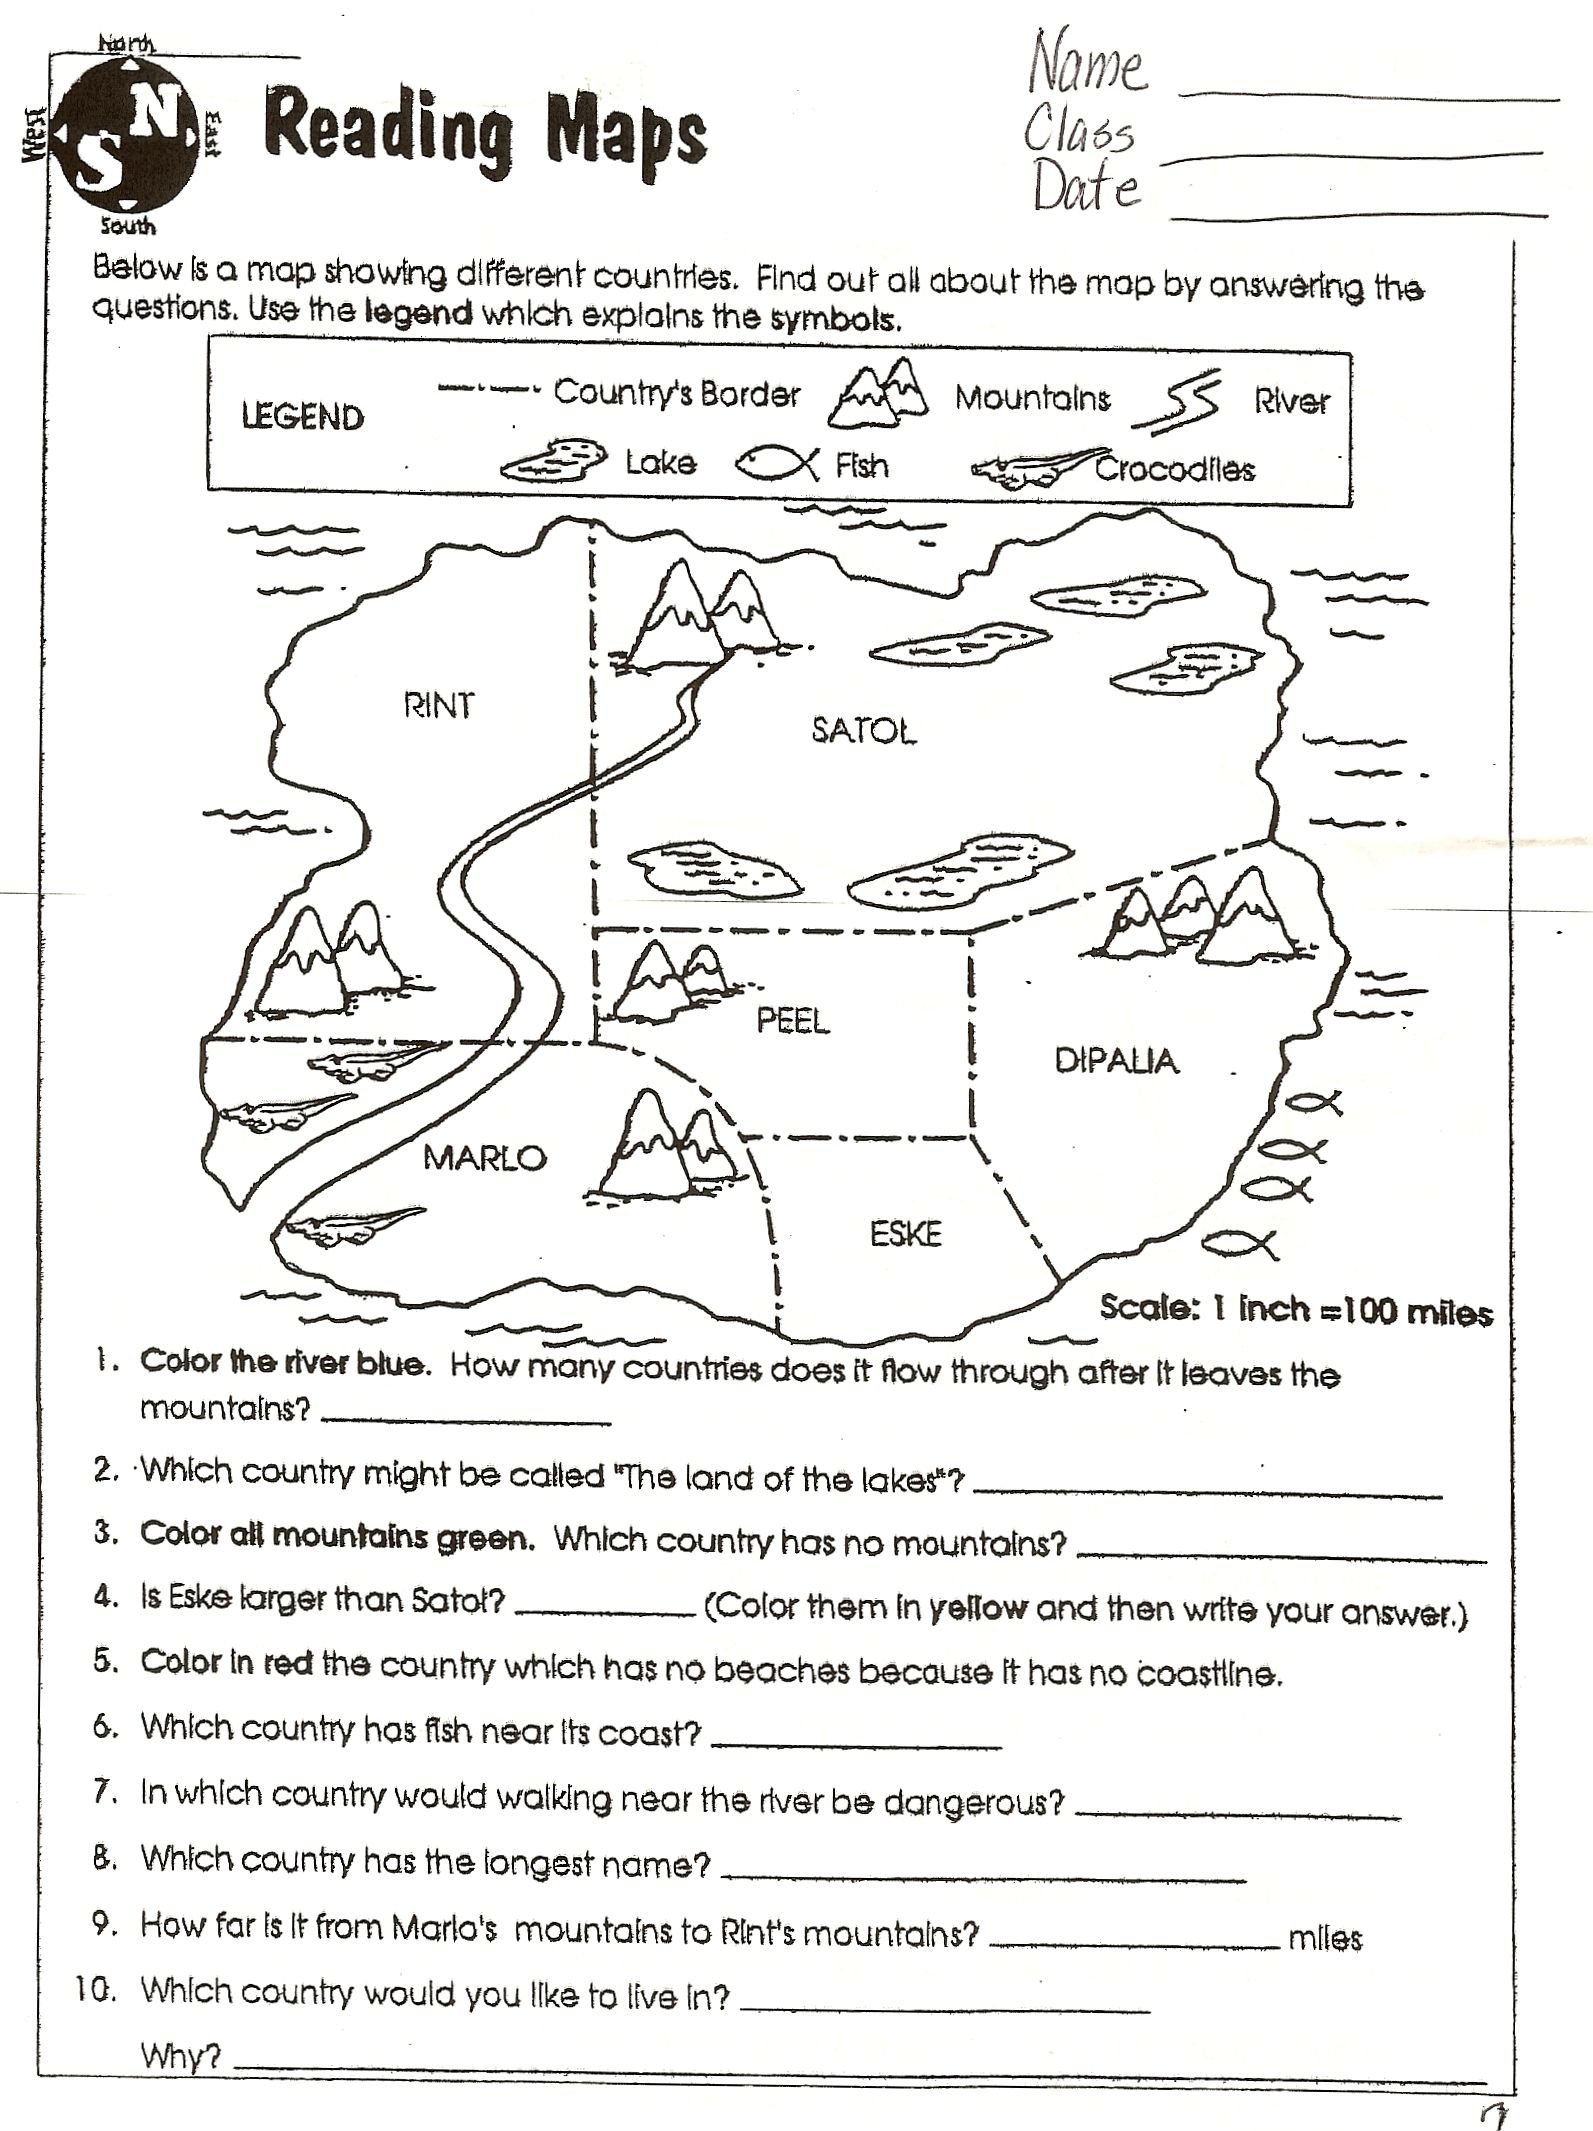 Worksheet 7th Grade History Worksheets Grass Fedjp